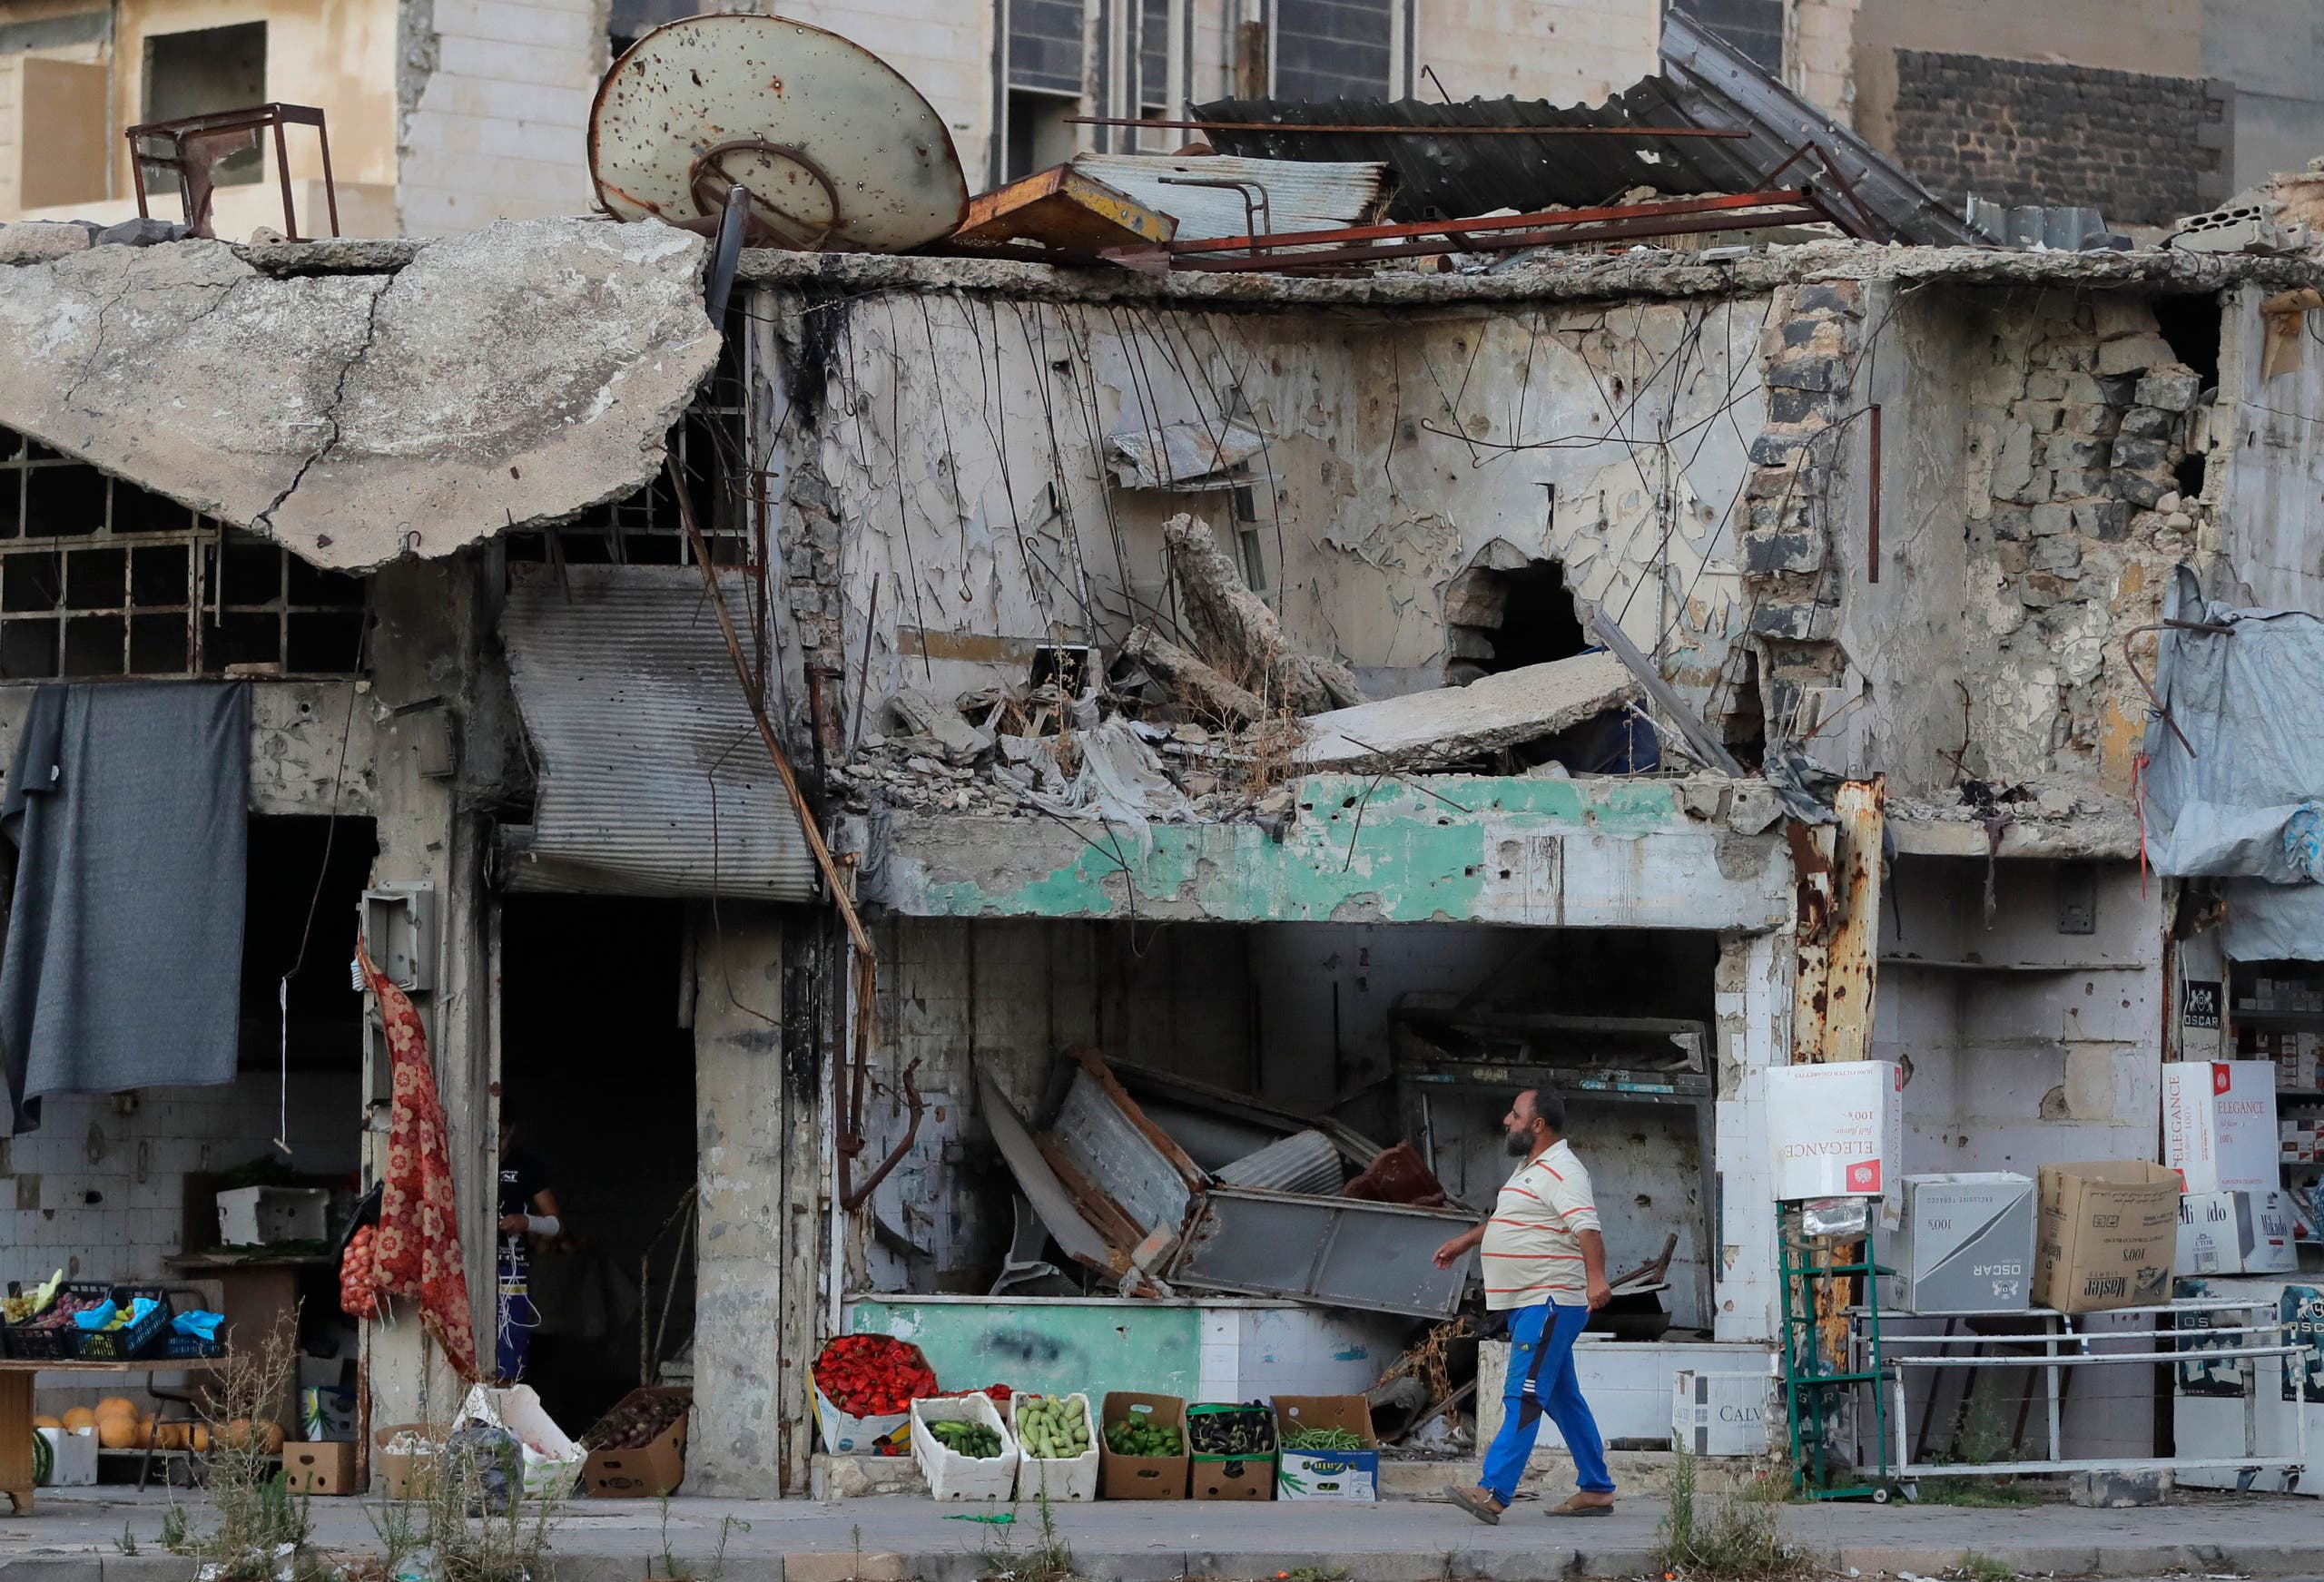 A man walks next to damaged buildings in the old town of Homs, Syria on Aug. 15, 2018. (AP)